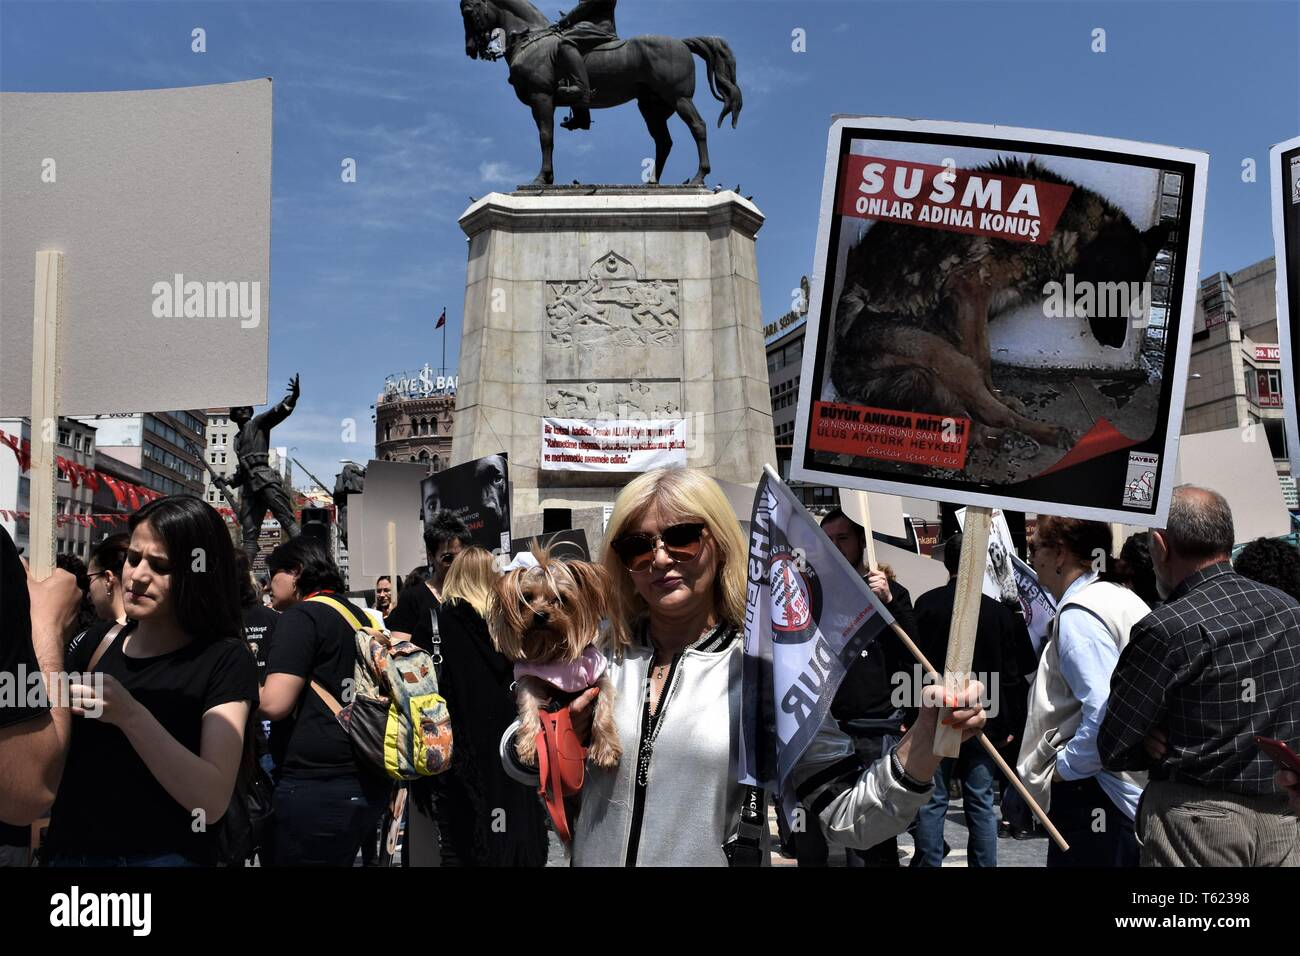 Ankara, Turkey. 28th Apr, 2019. A demonstrator poses with her dog during a protest for animal rights. Credit: Altan Gocher/ZUMA Wire/Alamy Live News - Stock Image